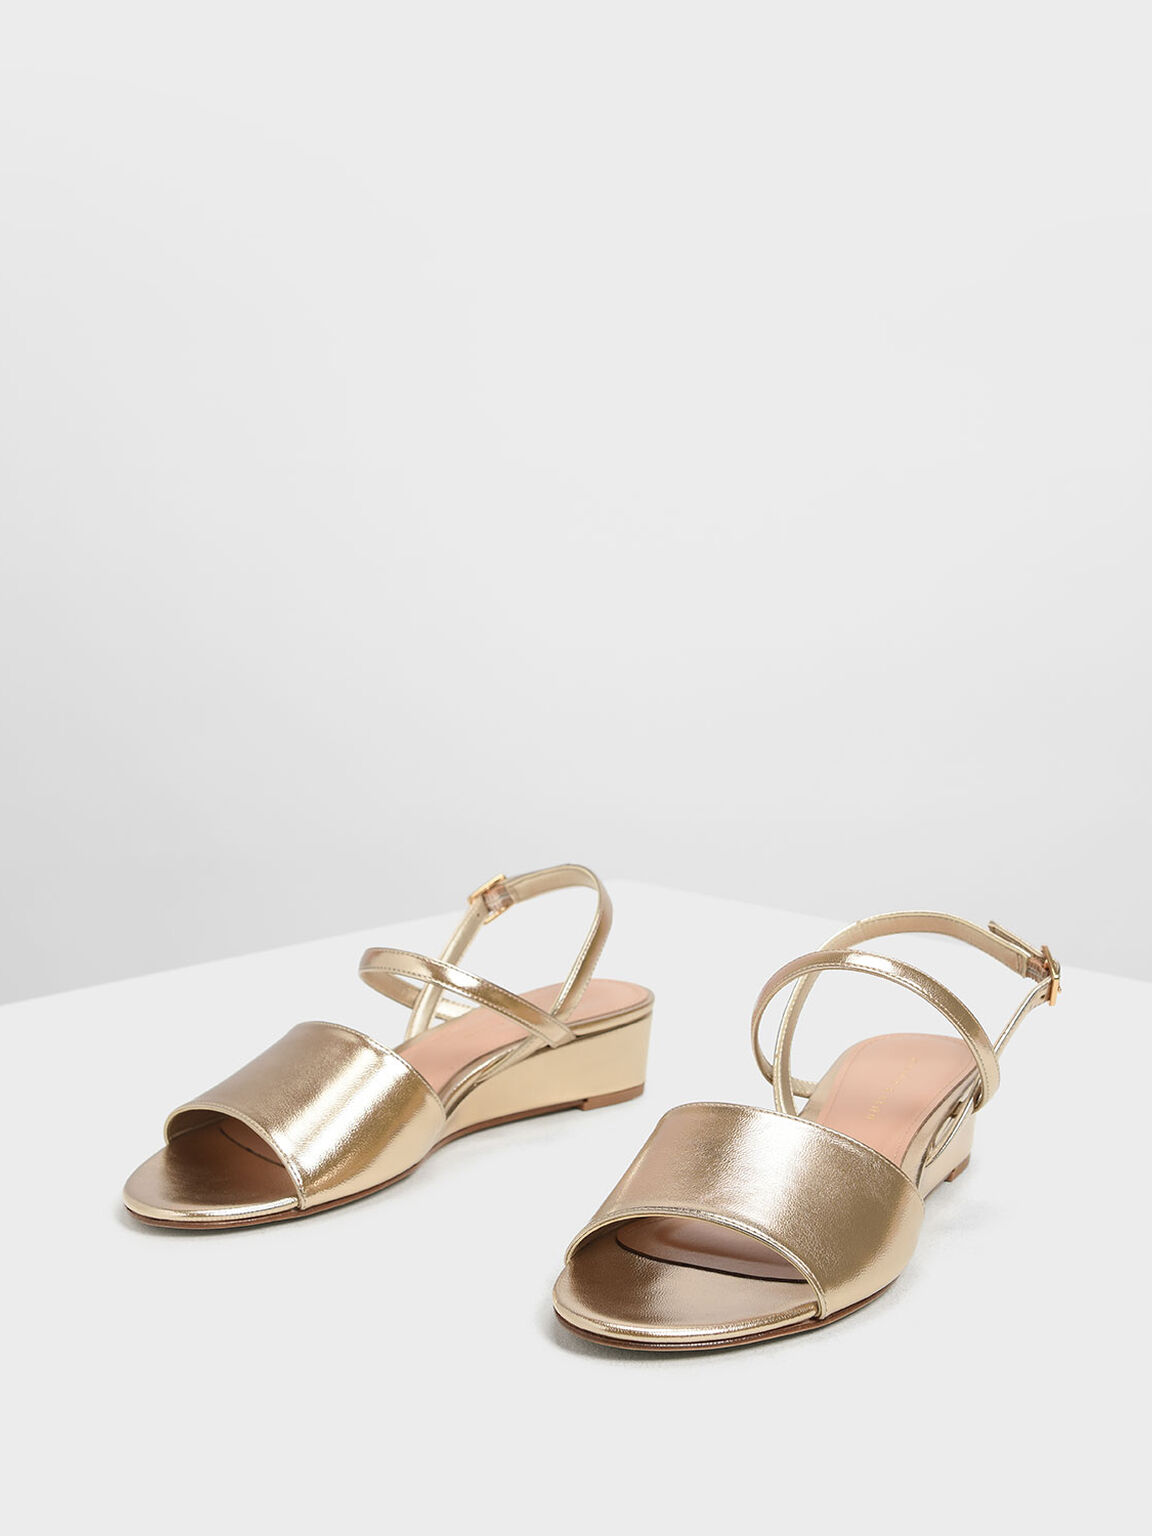 Low Wedge Ankle Strap Sandals, Gold, hi-res